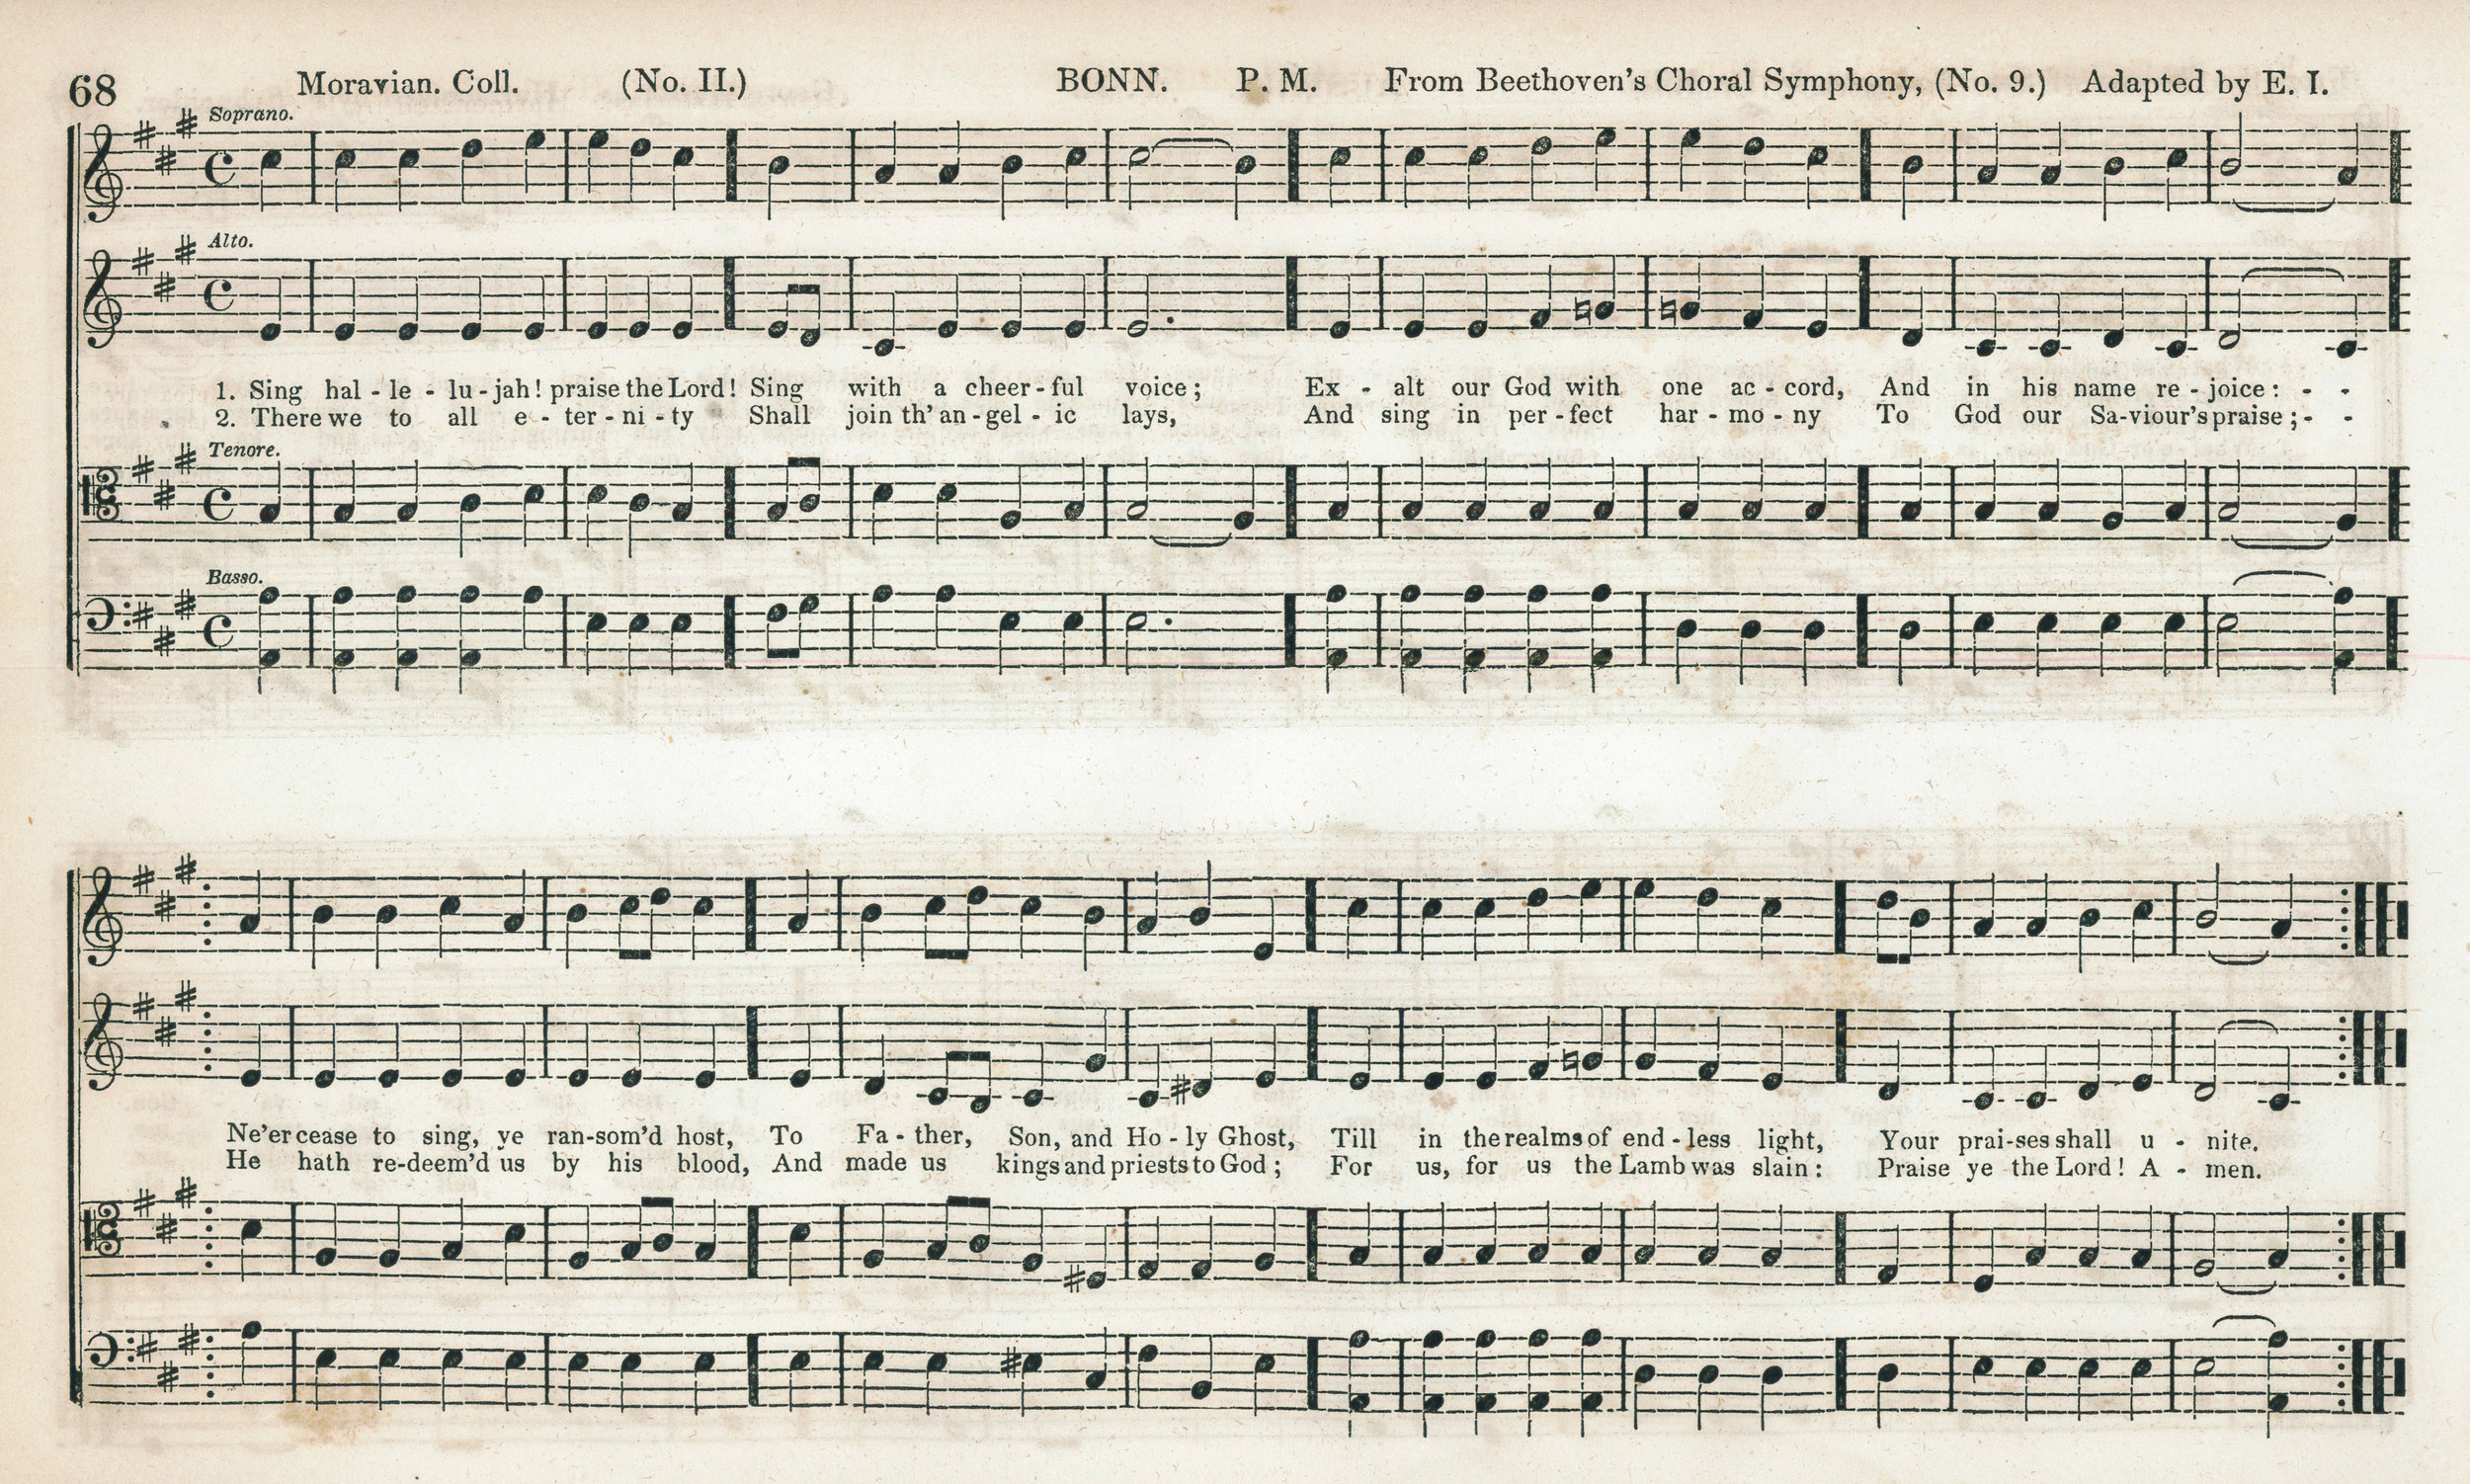 Fig. 5b.  E. Ives,  The Mozart Collection of Sacred Music  (NY: Paine & Burgess, 1846). Melody in the soprano part.